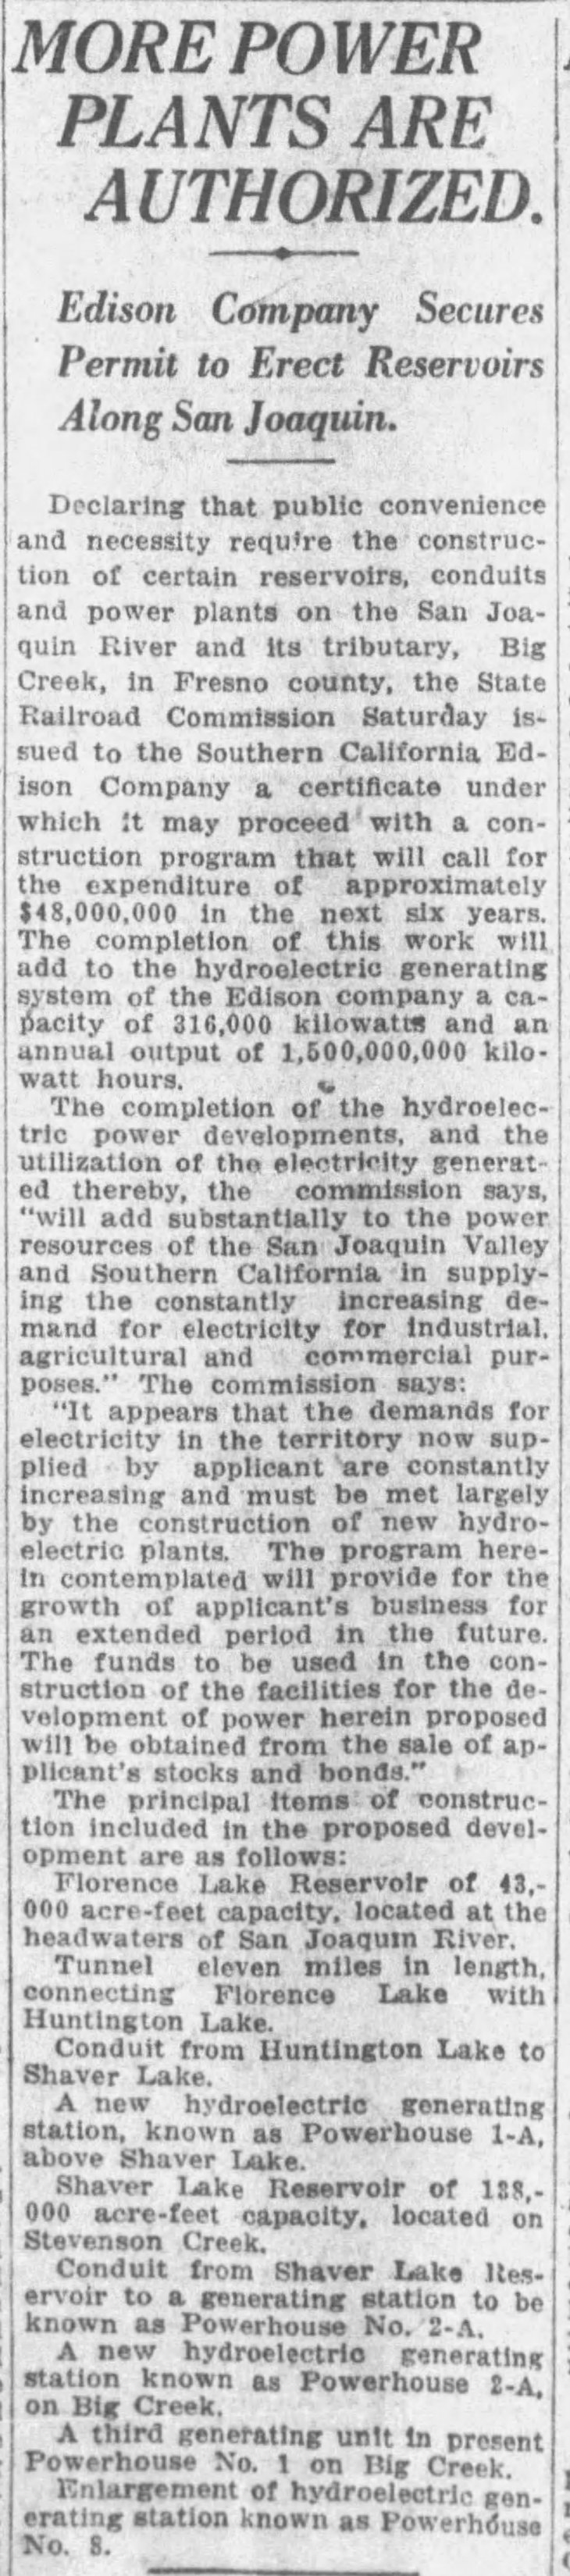 The_Los_Angeles_Times_Mon__Jan_24__1921_